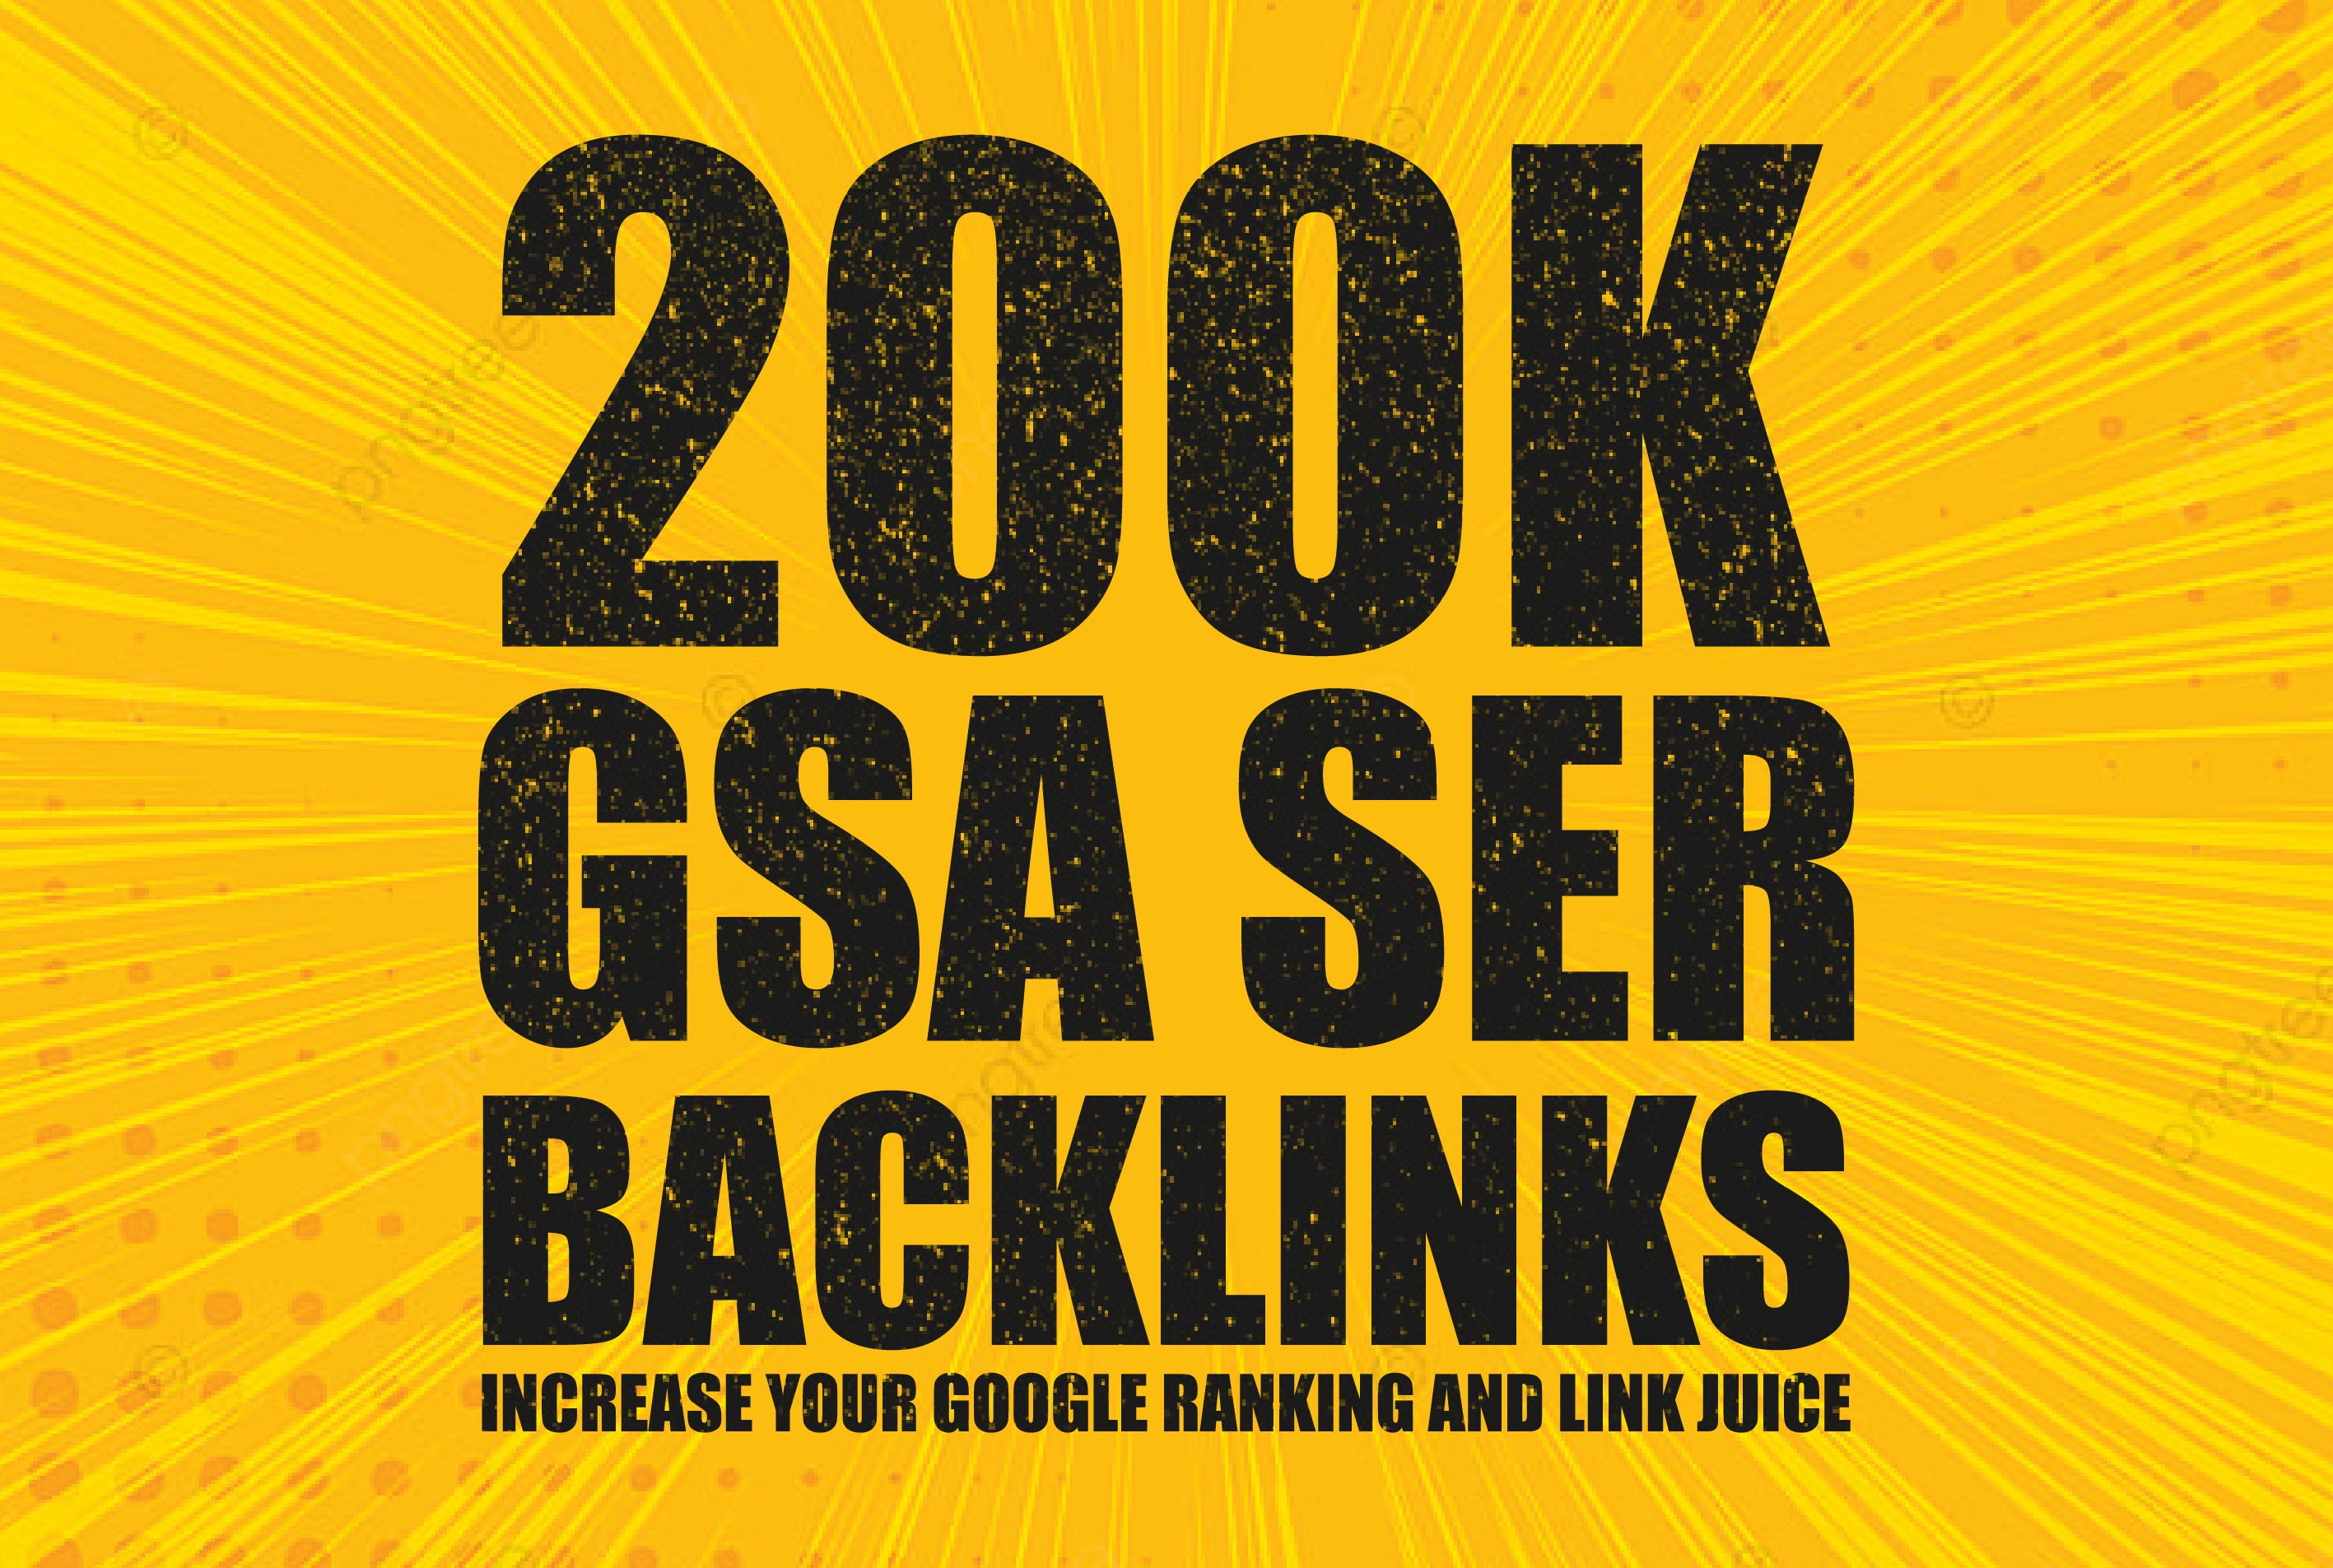 I will provide 200k Backlinks for your google ranking